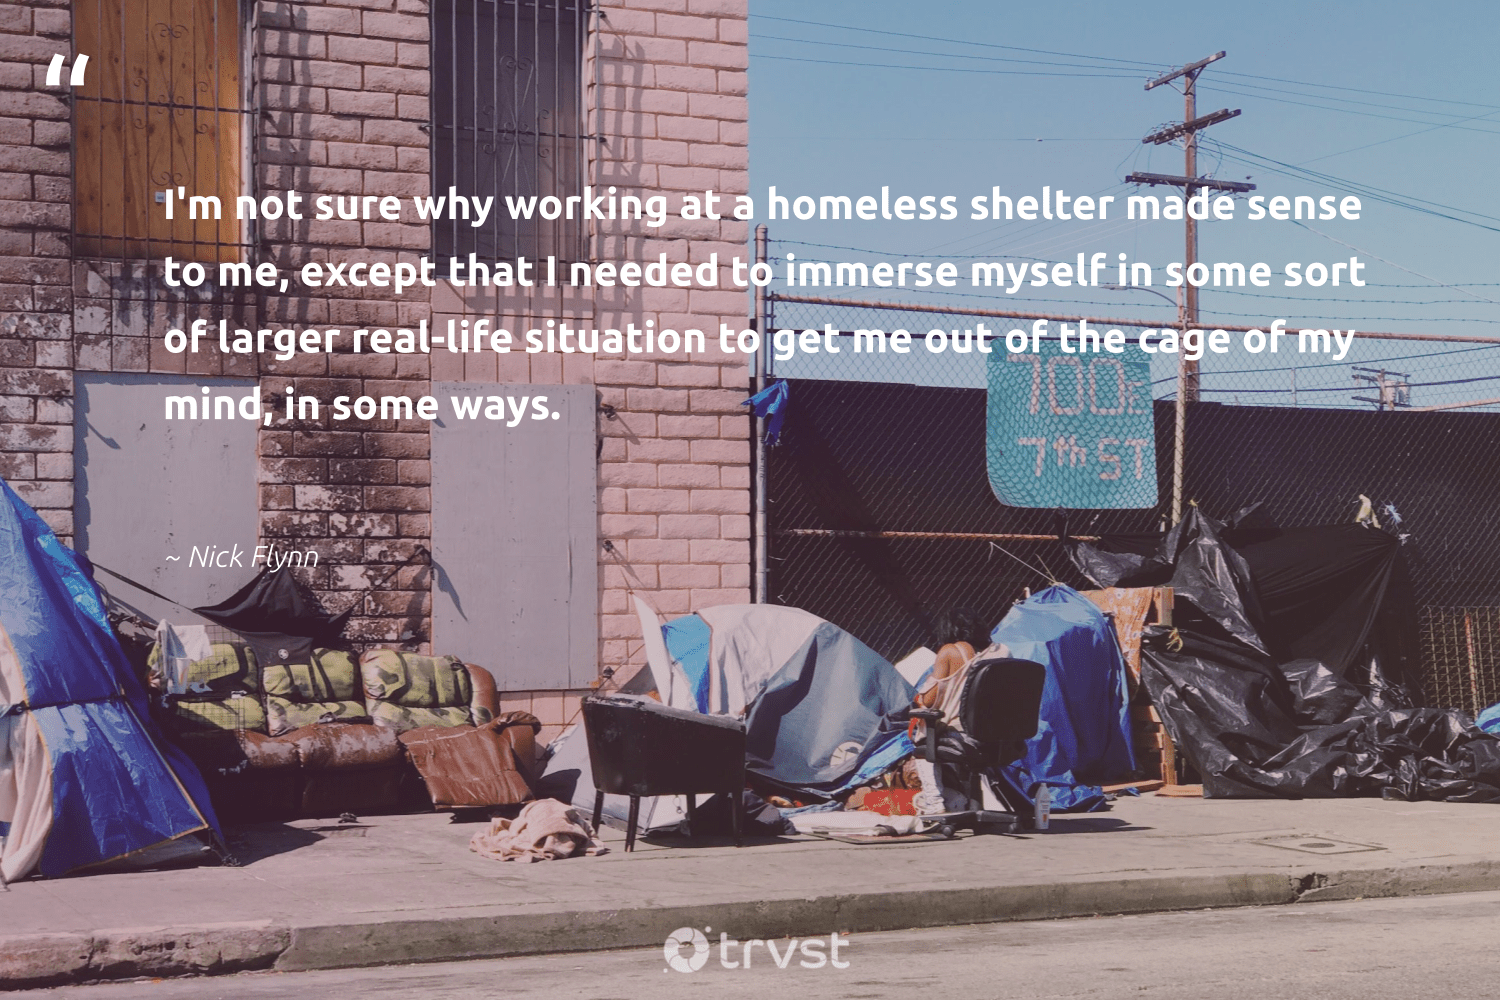 """""""I'm not sure why working at a homeless shelter made sense to me, except that I needed to immerse myself in some sort of larger real-life situation to get me out of the cage of my mind, in some ways.""""  - Nick Flynn #trvst #quotes #homelessness #homeless #weareallone #makeadifference #thinkgreen #sustainablefutures #equalopportunity #takeaction #inclusion #equalrights"""